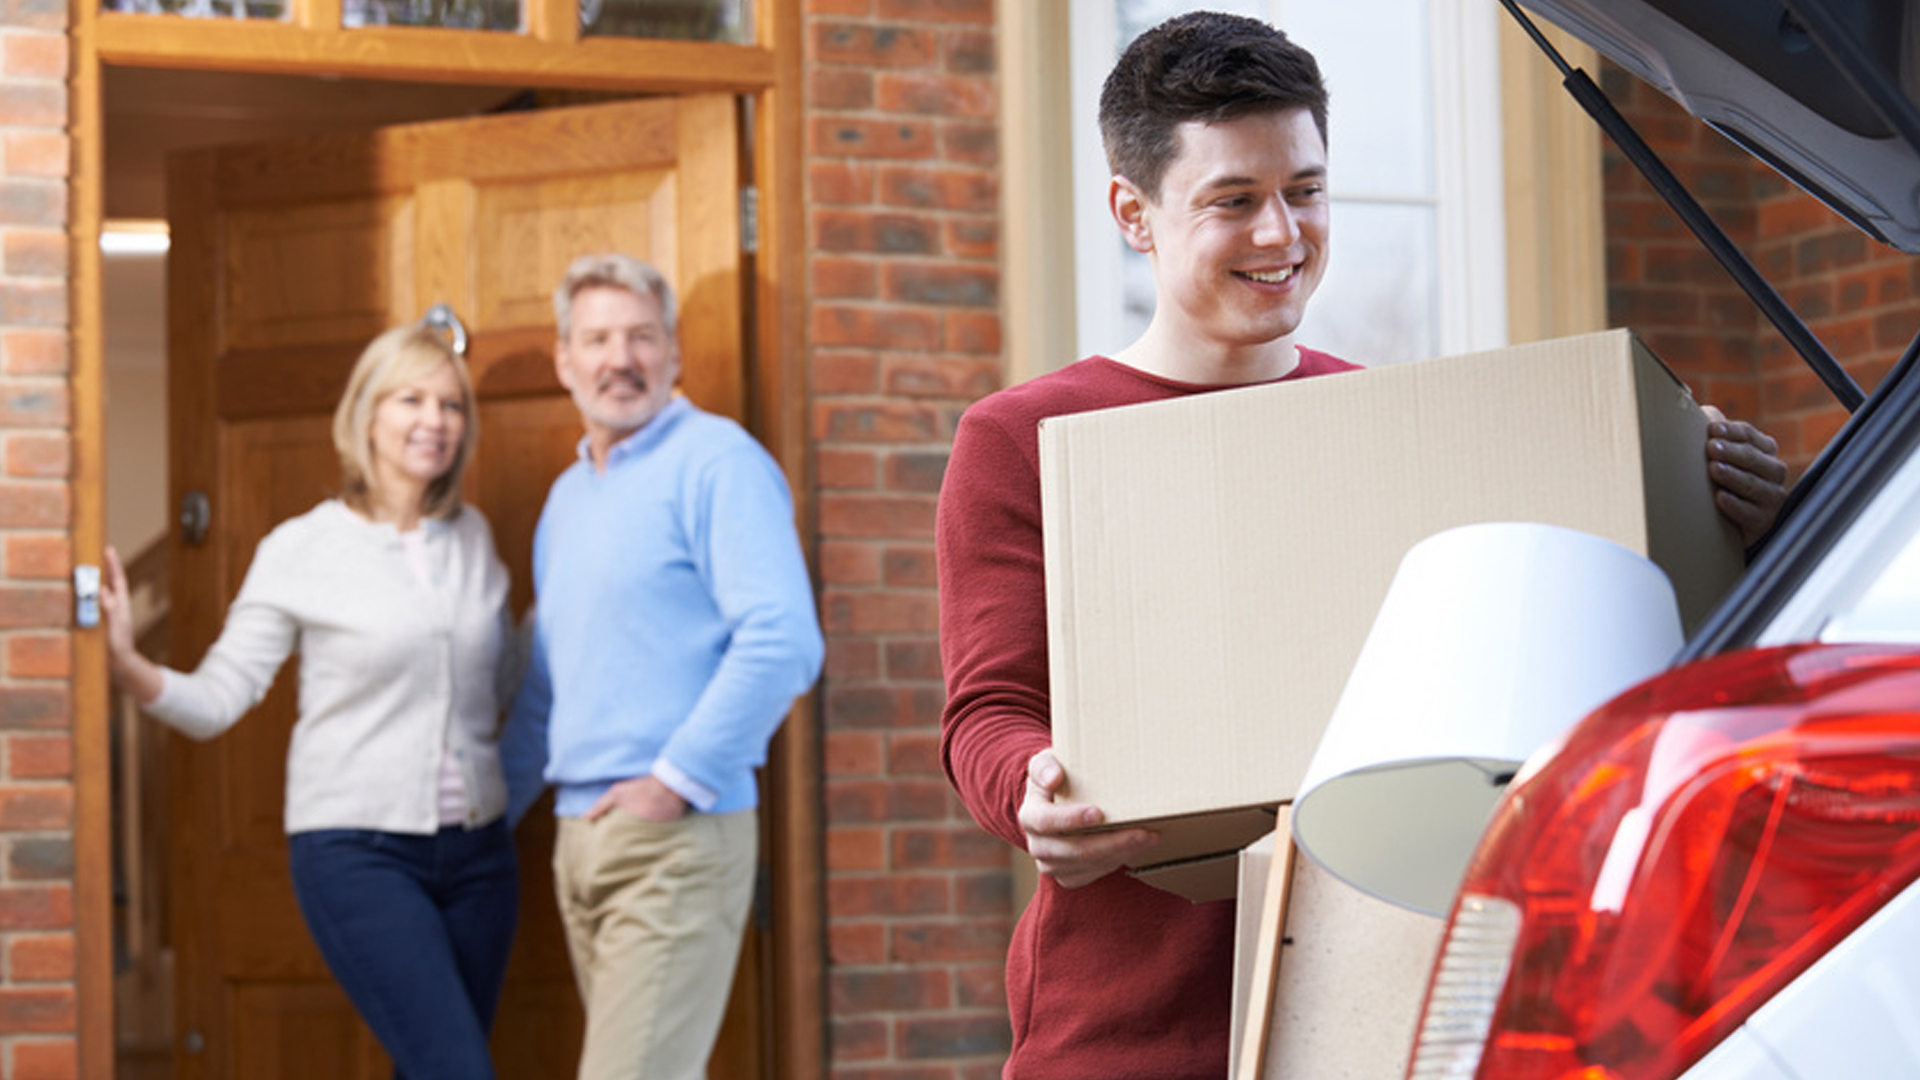 WHEN SHOULD I EXPECT MY ADULT CHILD TO MOVE OUT?